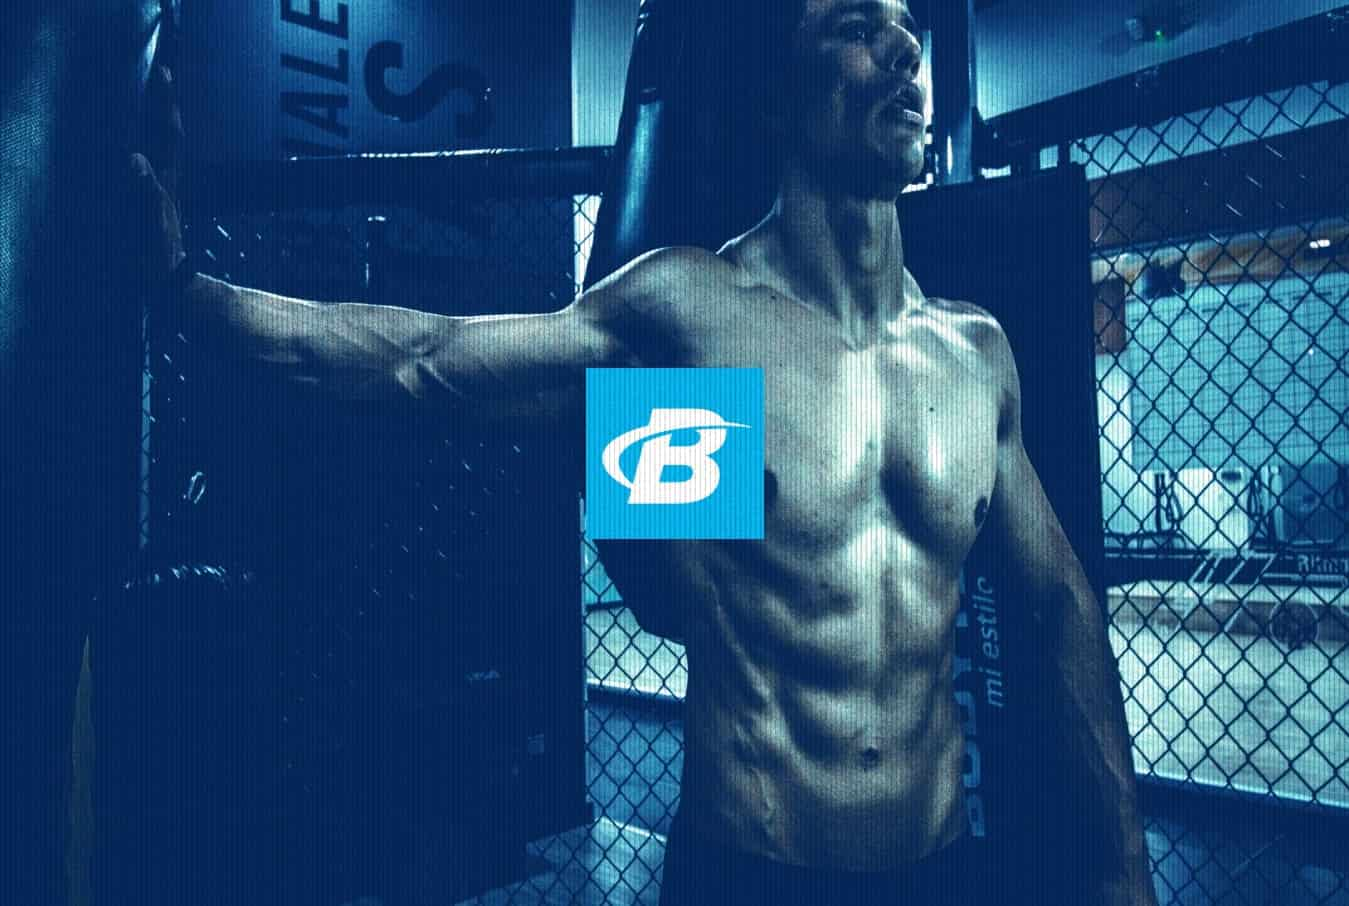 Bodybuilding-com-suffers-data-breach-issues-password-reset-for-all-users